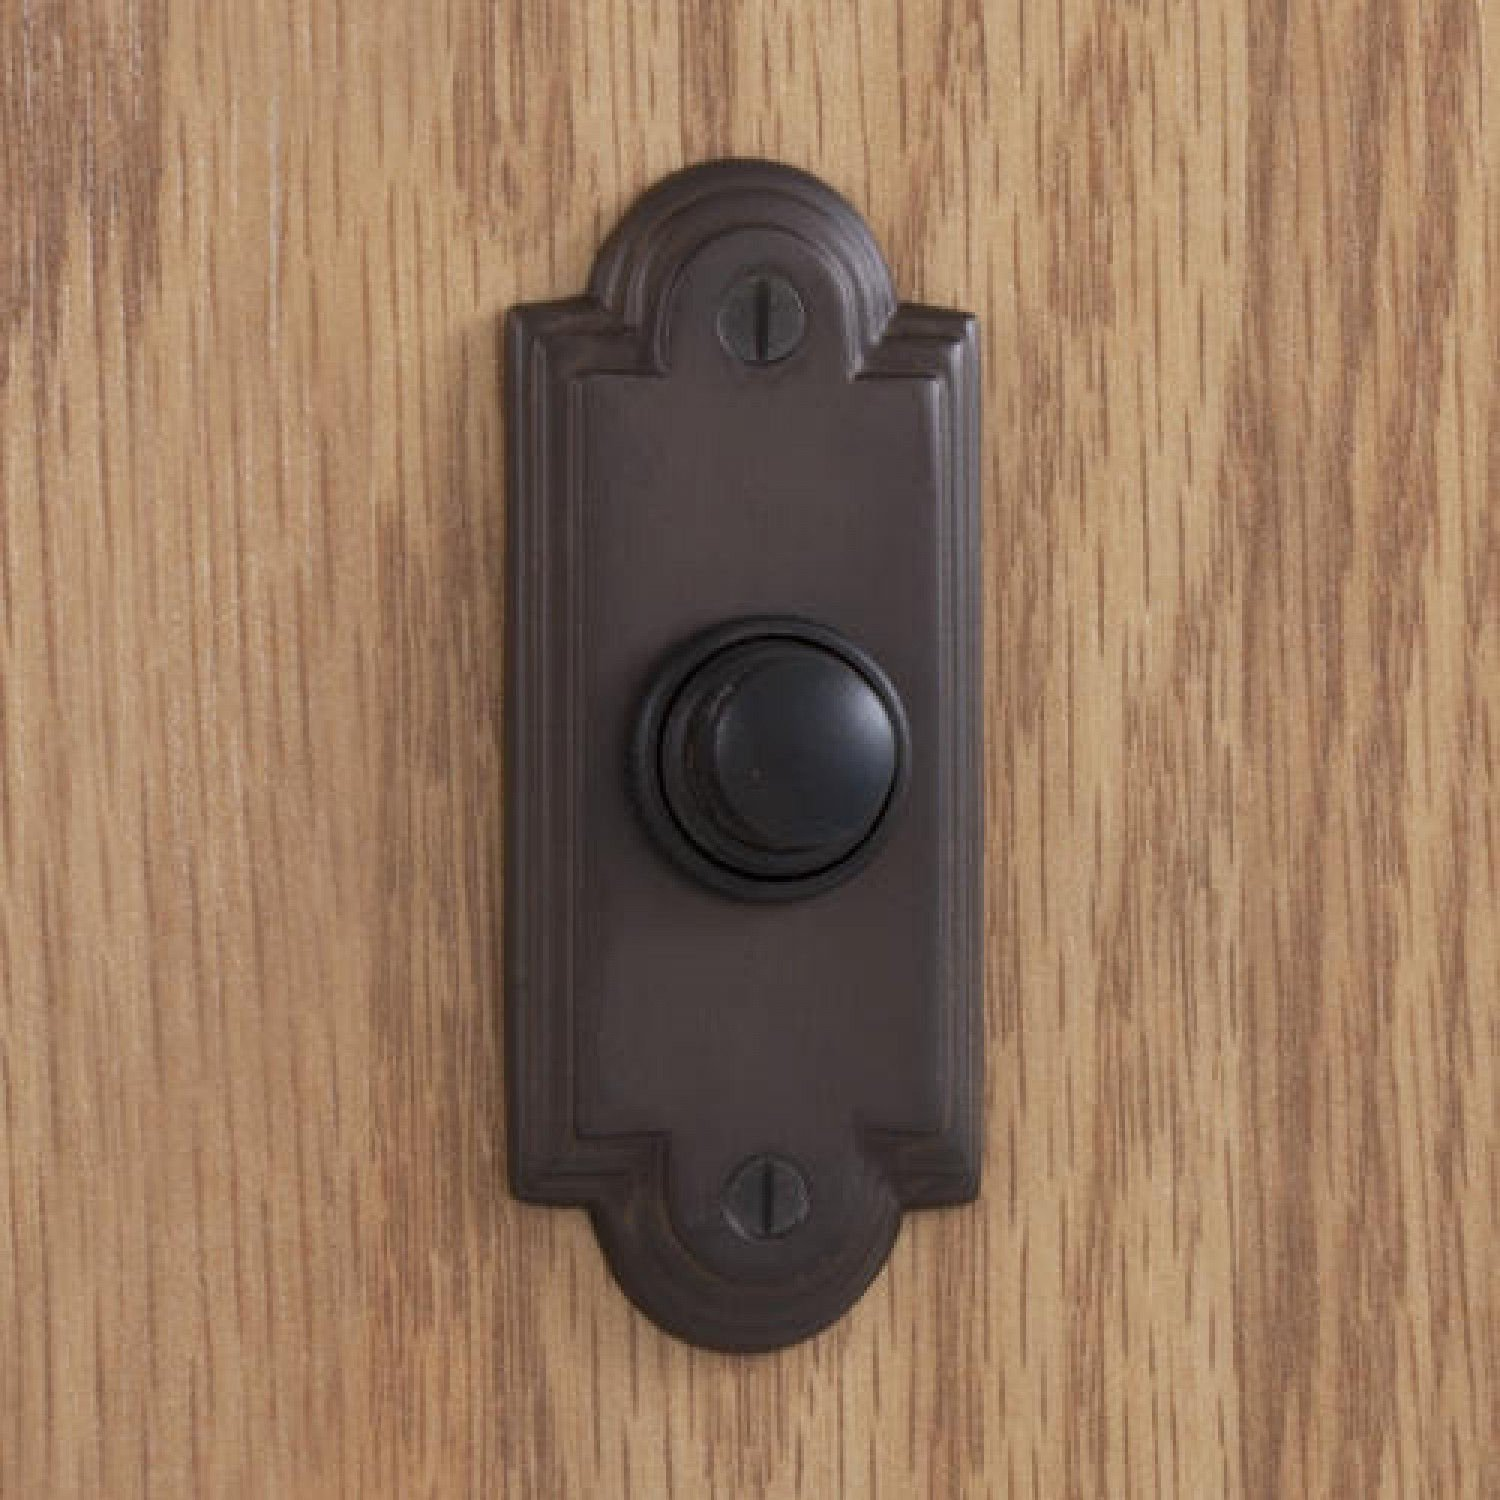 Casa Hardware Williamsburg Style Solid Forged Brass Metal Doorbell with Push Button in Oil Rubbed Bronze Finish by SIGHW